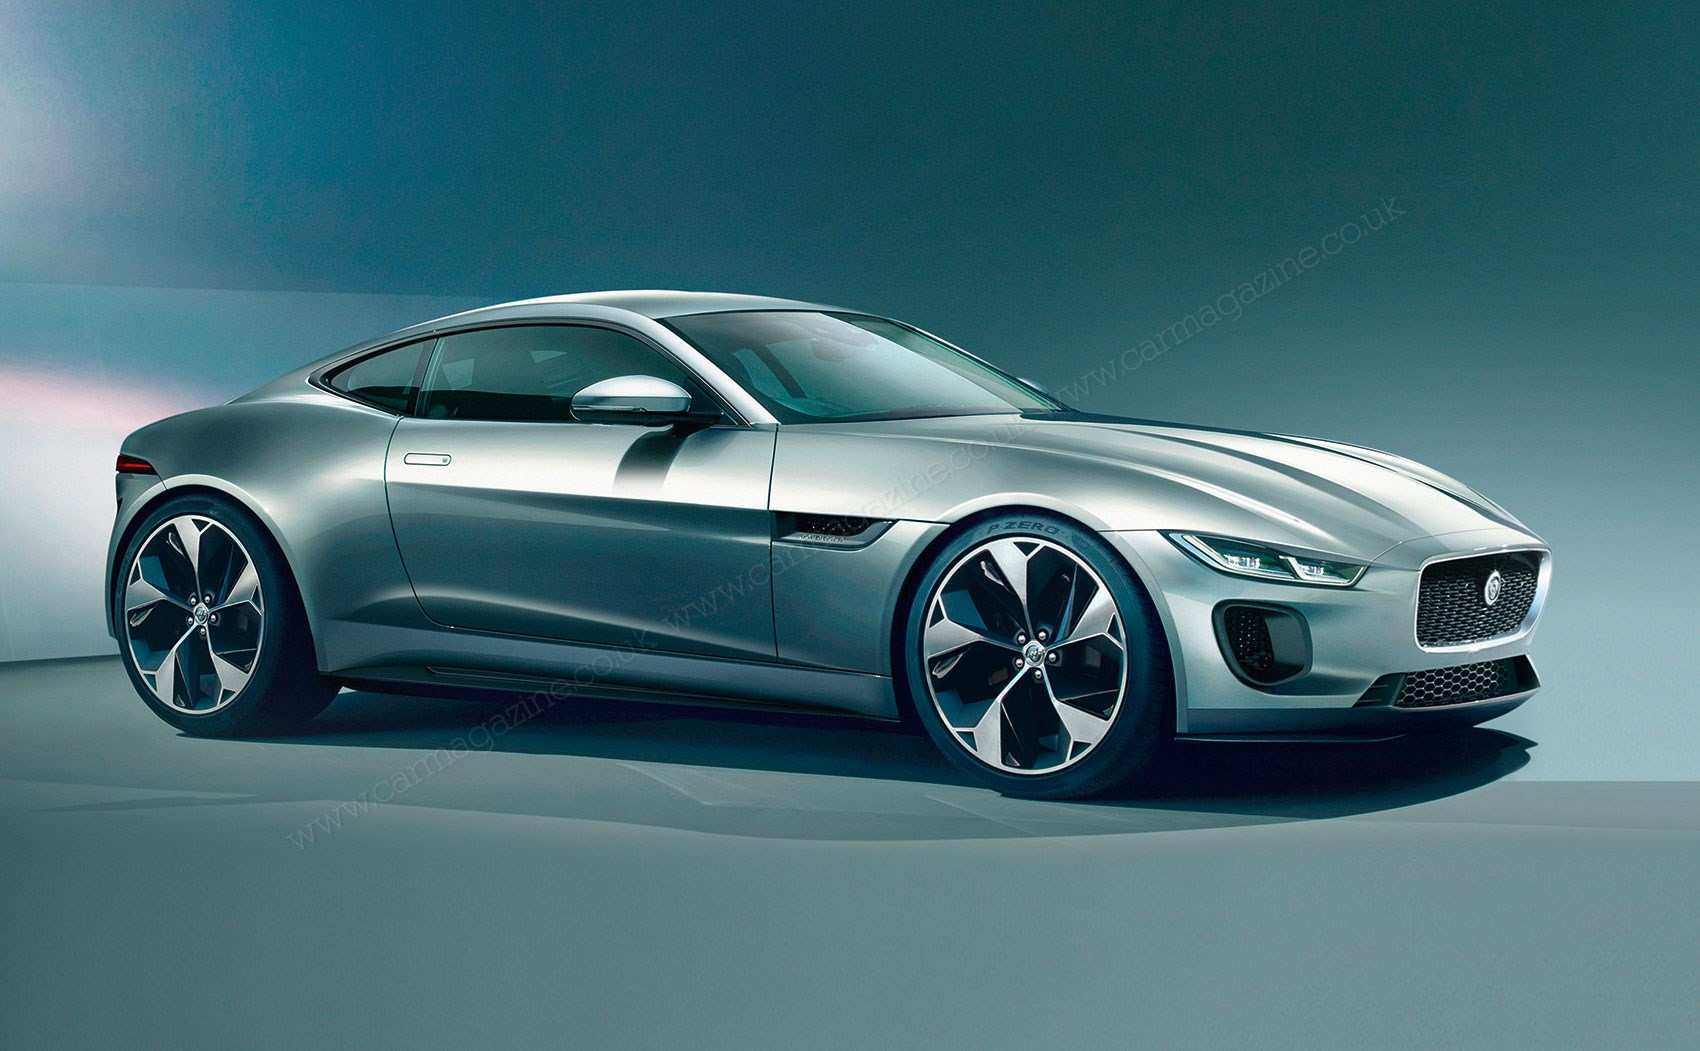 63 Gallery of 2020 Jaguar F Type New Concept Reviews for 2020 Jaguar F Type New Concept